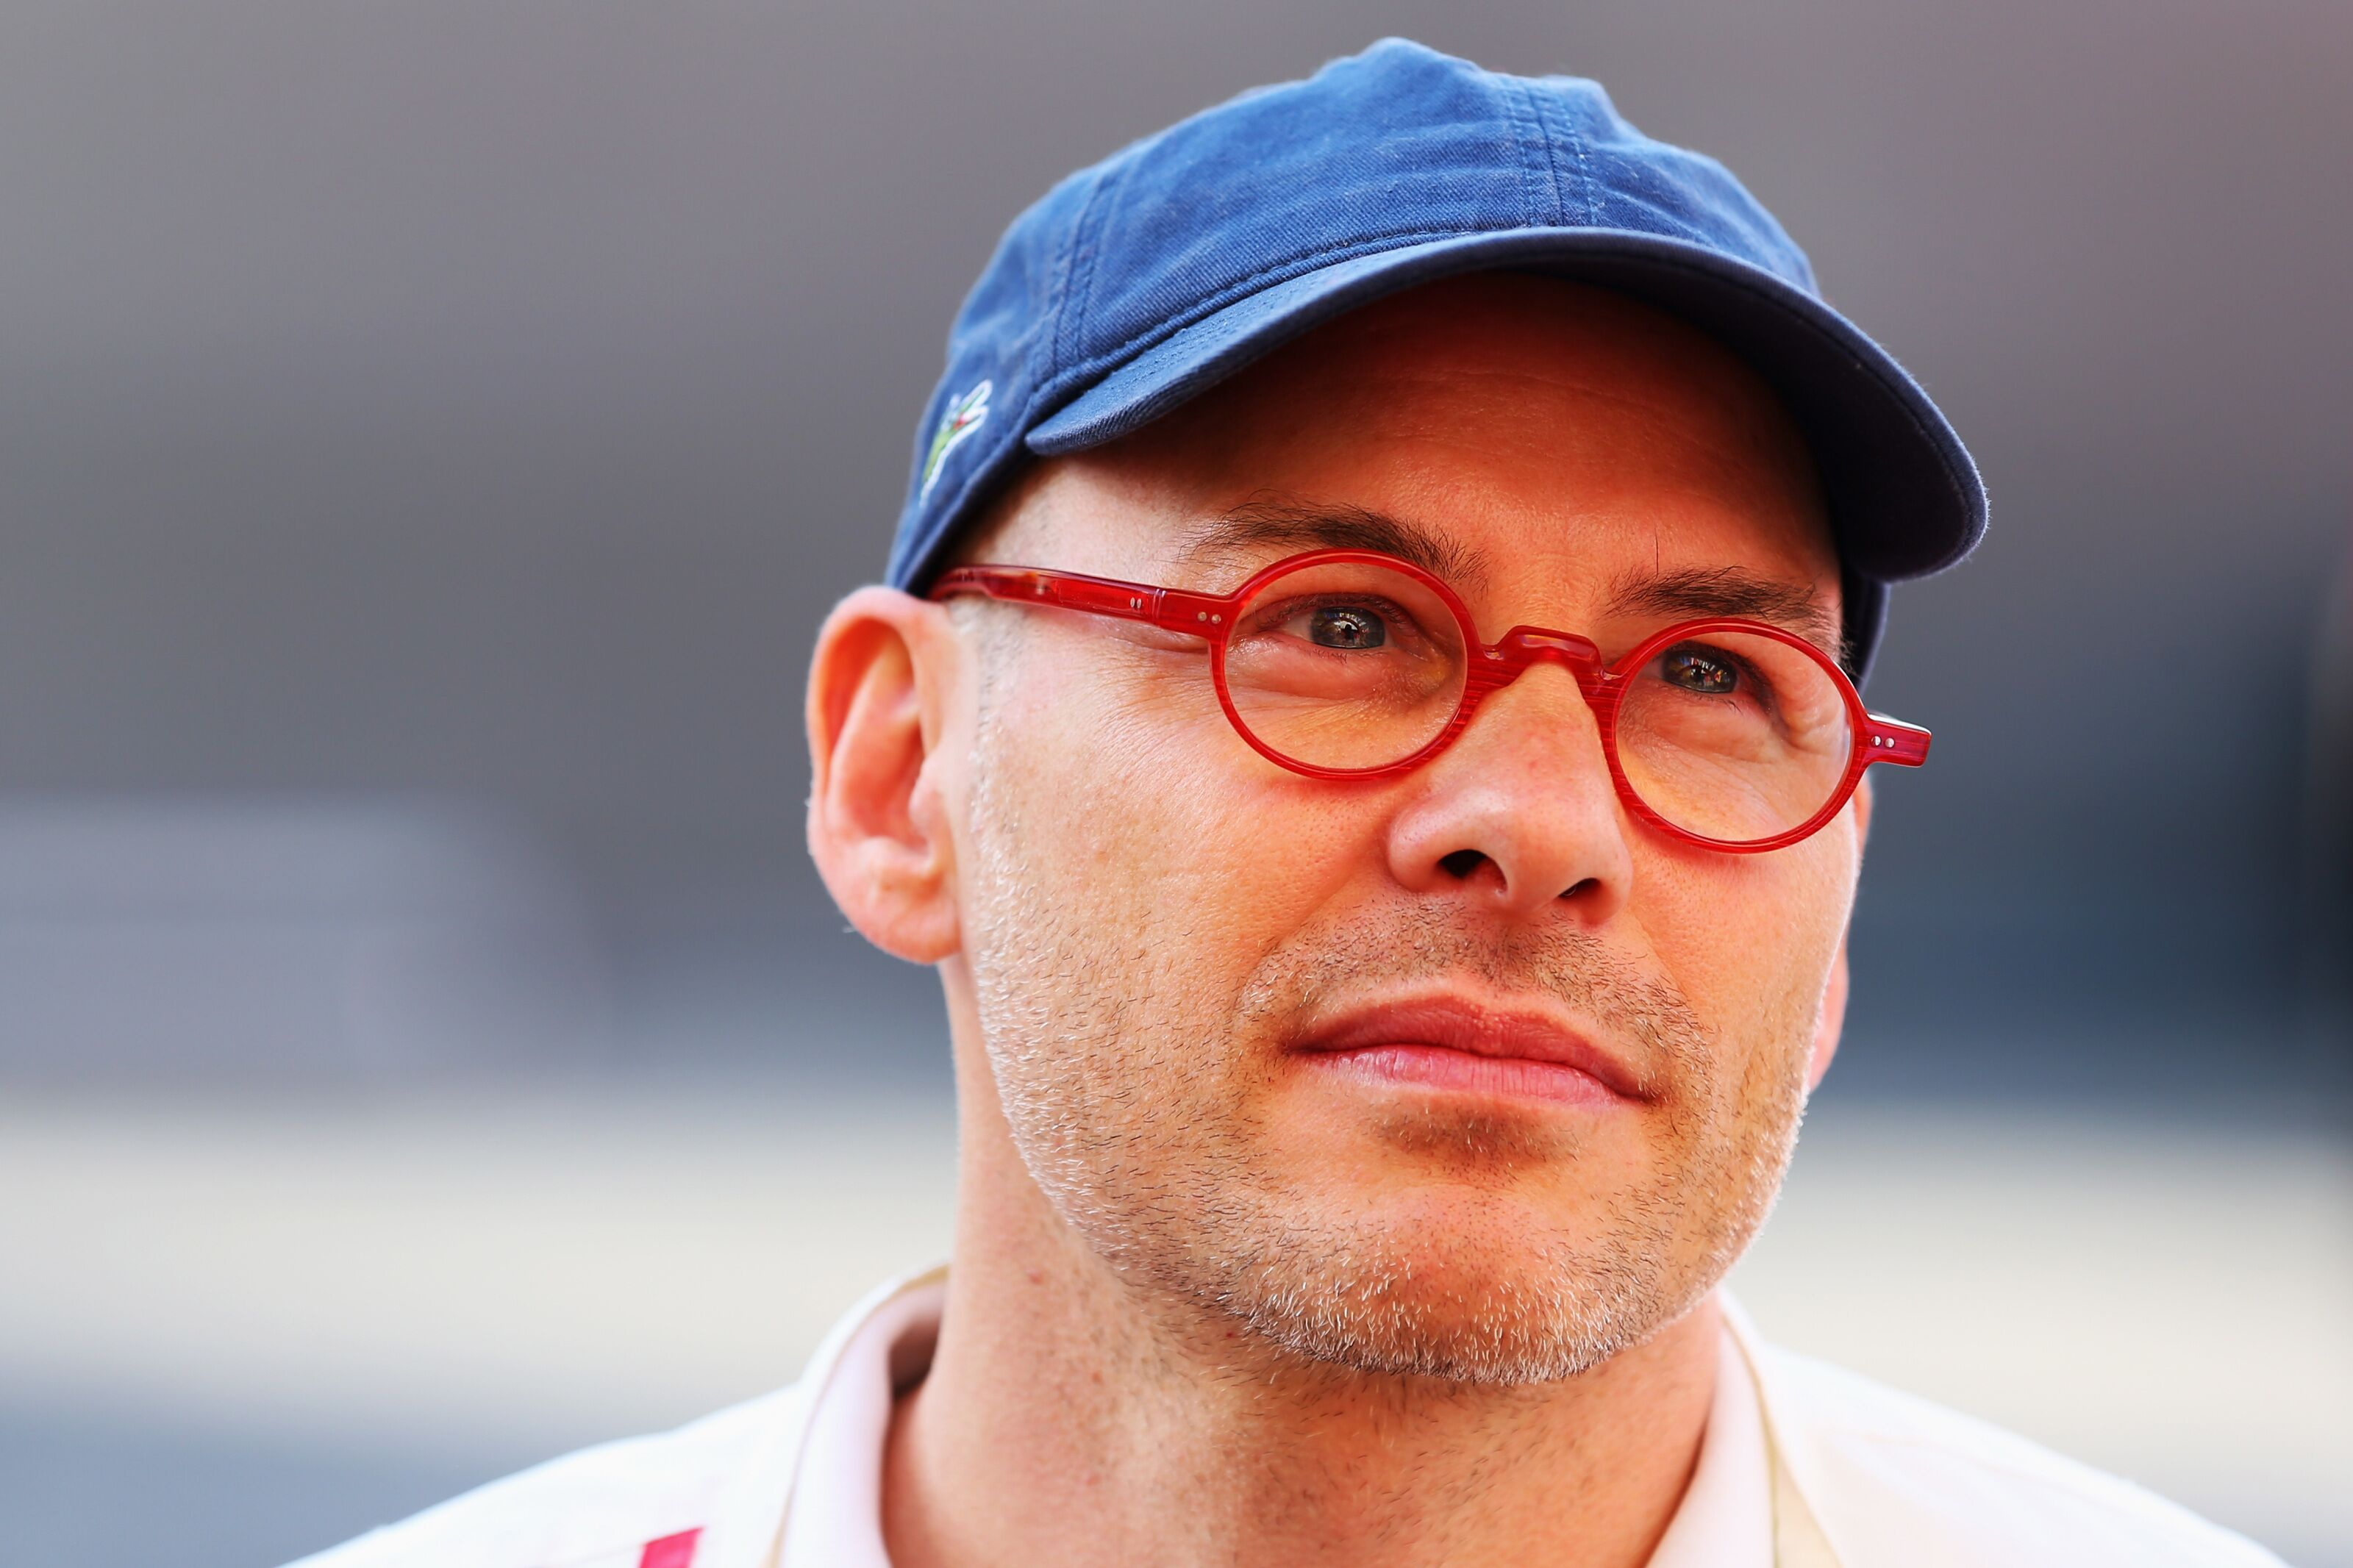 Formula 1: What does Jacques Villeneuve have against Charles Leclerc?